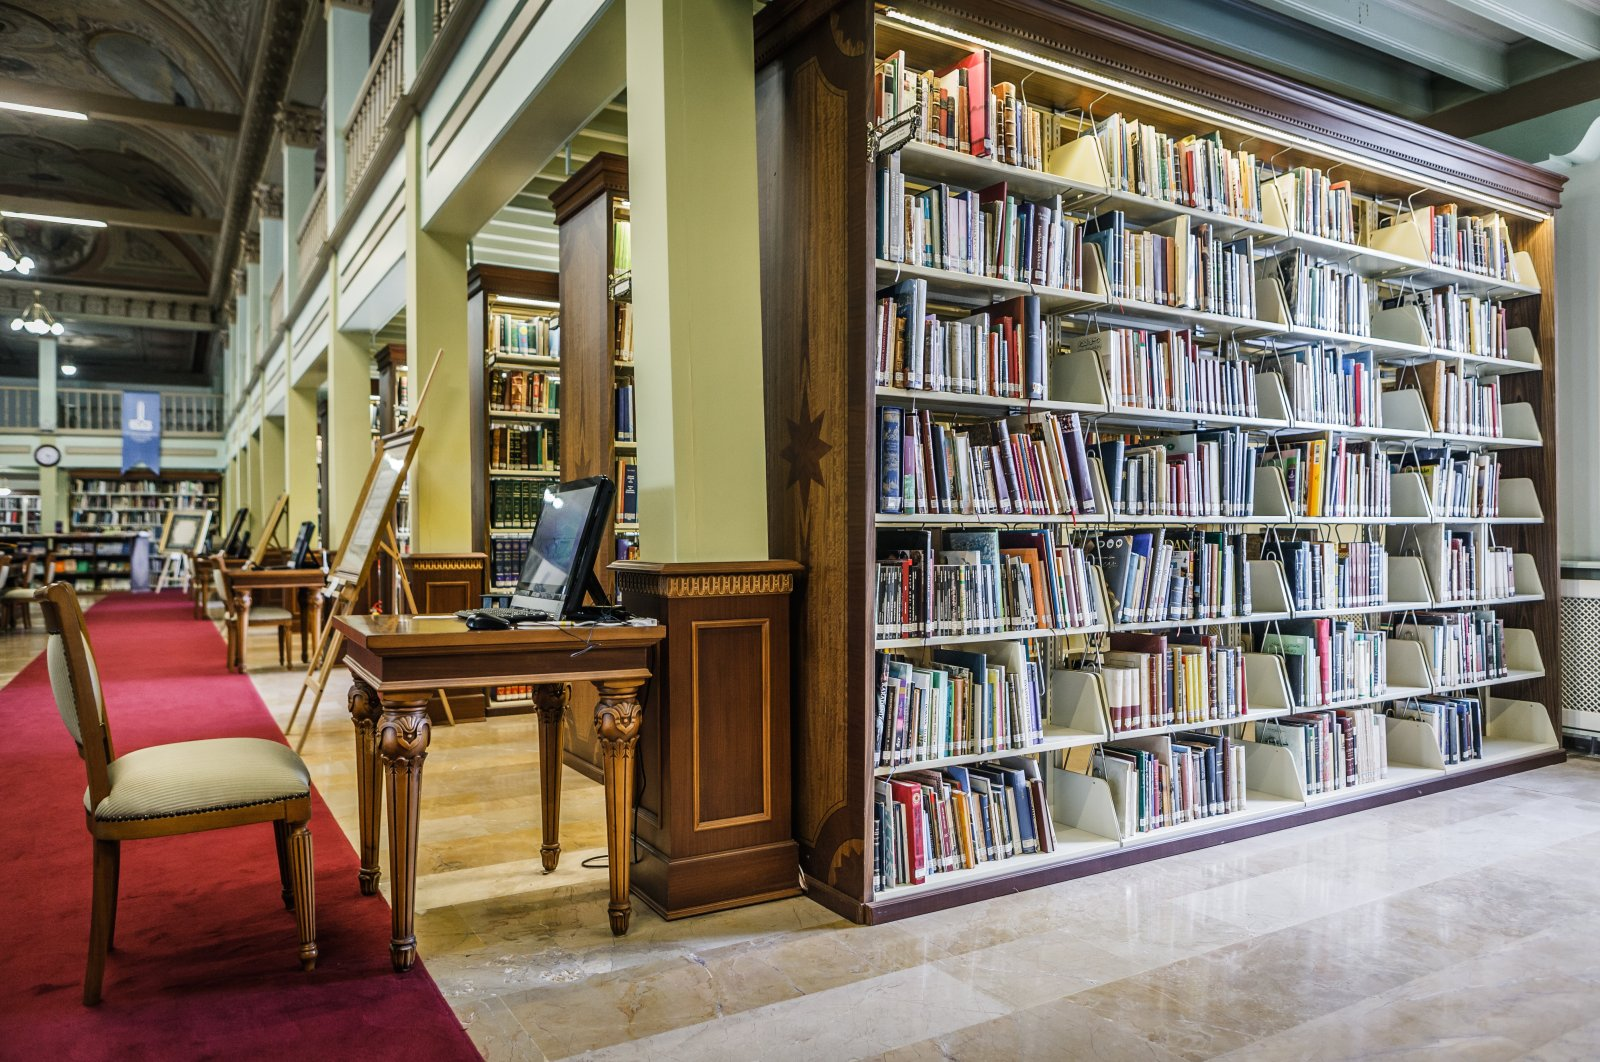 IRCICA's Farabi Digital Library is among the few libraries that have optical character recognition (OCR) technology in Turkey. (Photo by RECAI KÖMÜR)